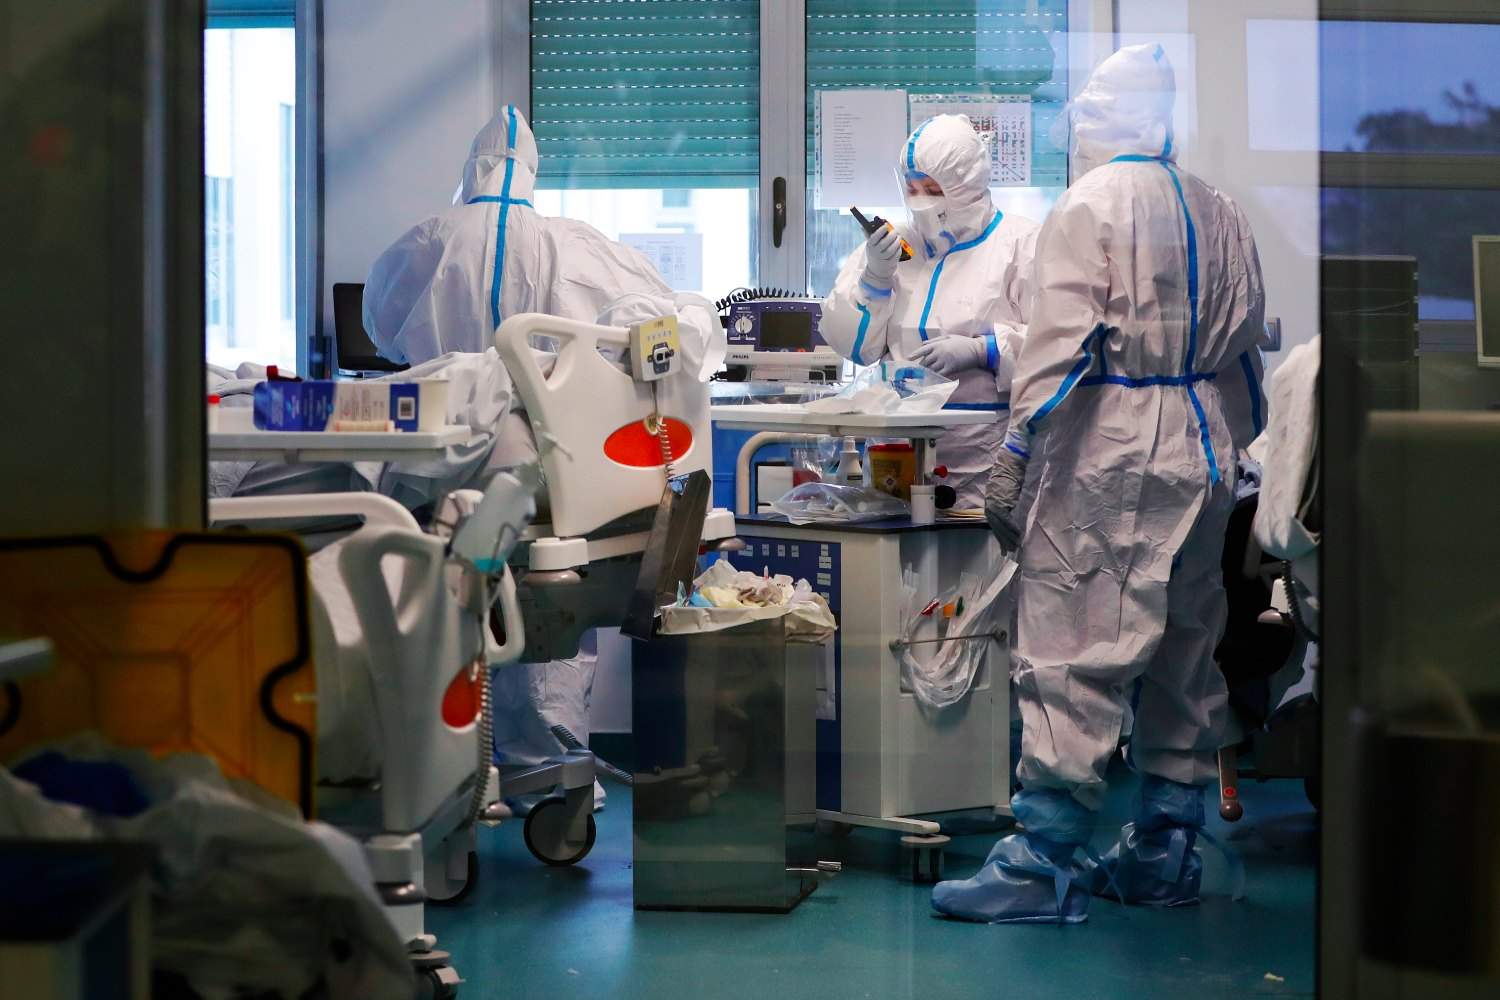 Germany sends ventilators and doctors to hard-hit Portugal